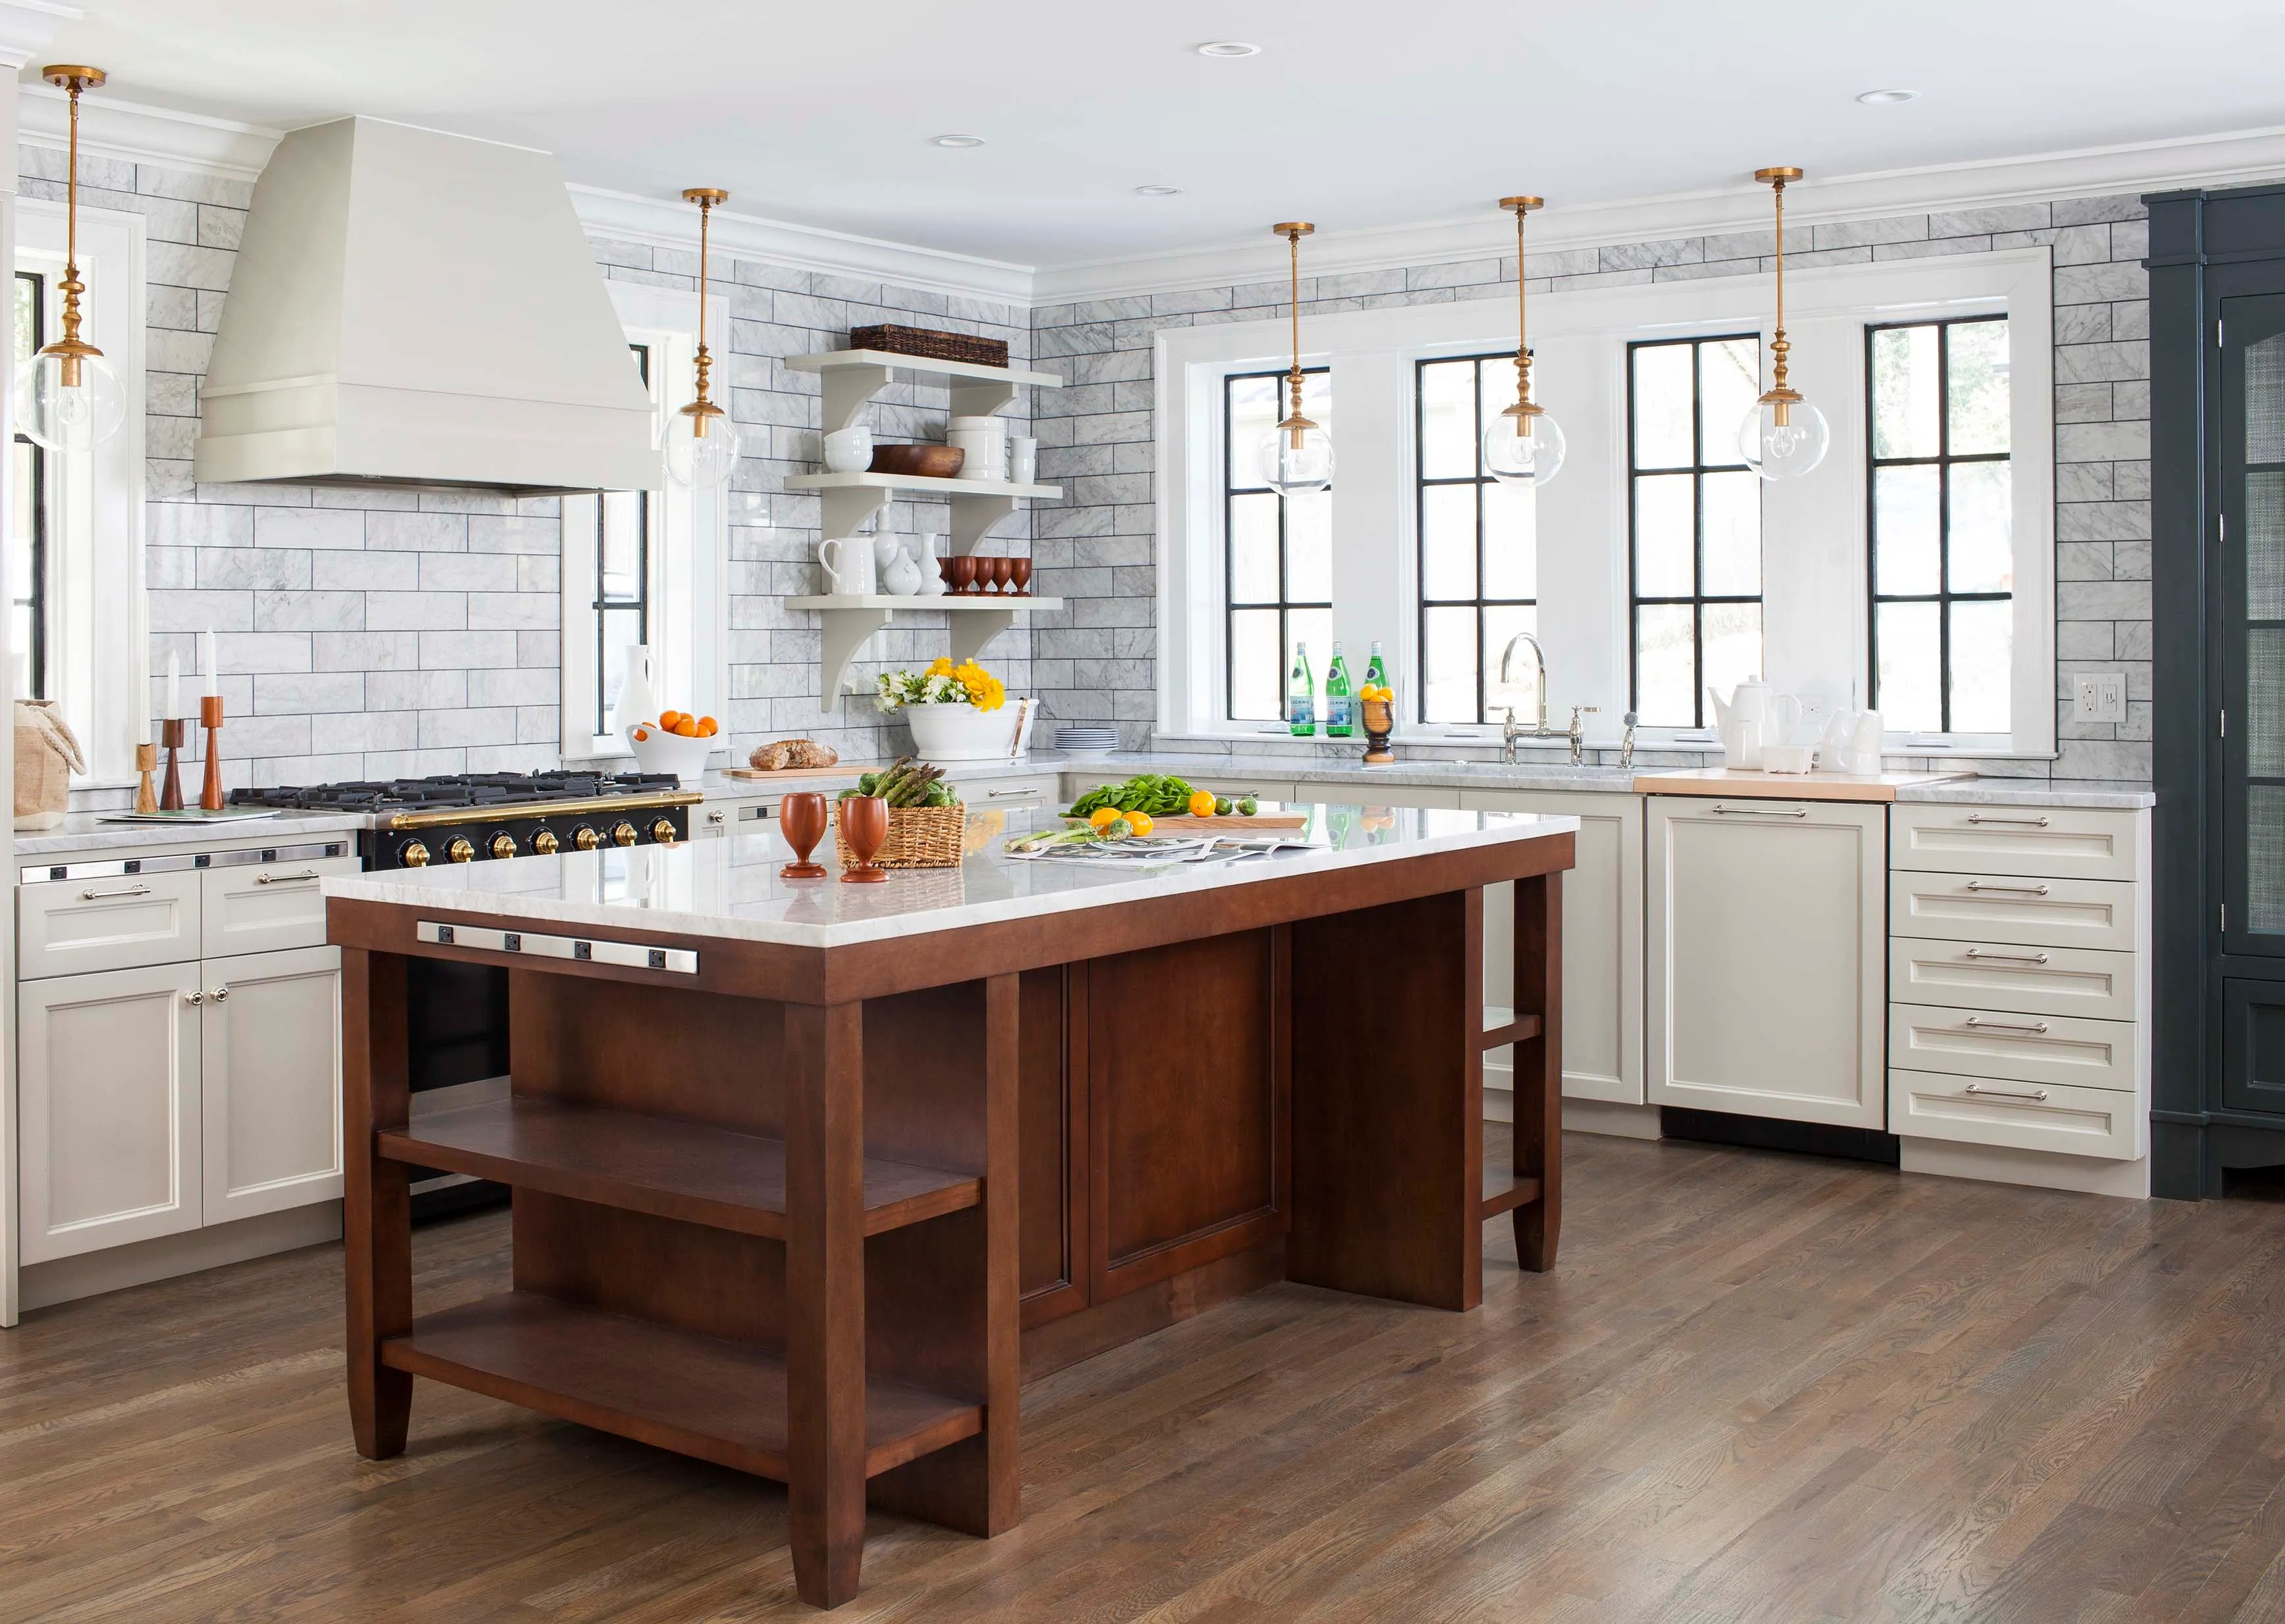 trends upper kitchen cabinets The clients wanted to eliminate all upper cabinets The CornuFe 90 range was the only